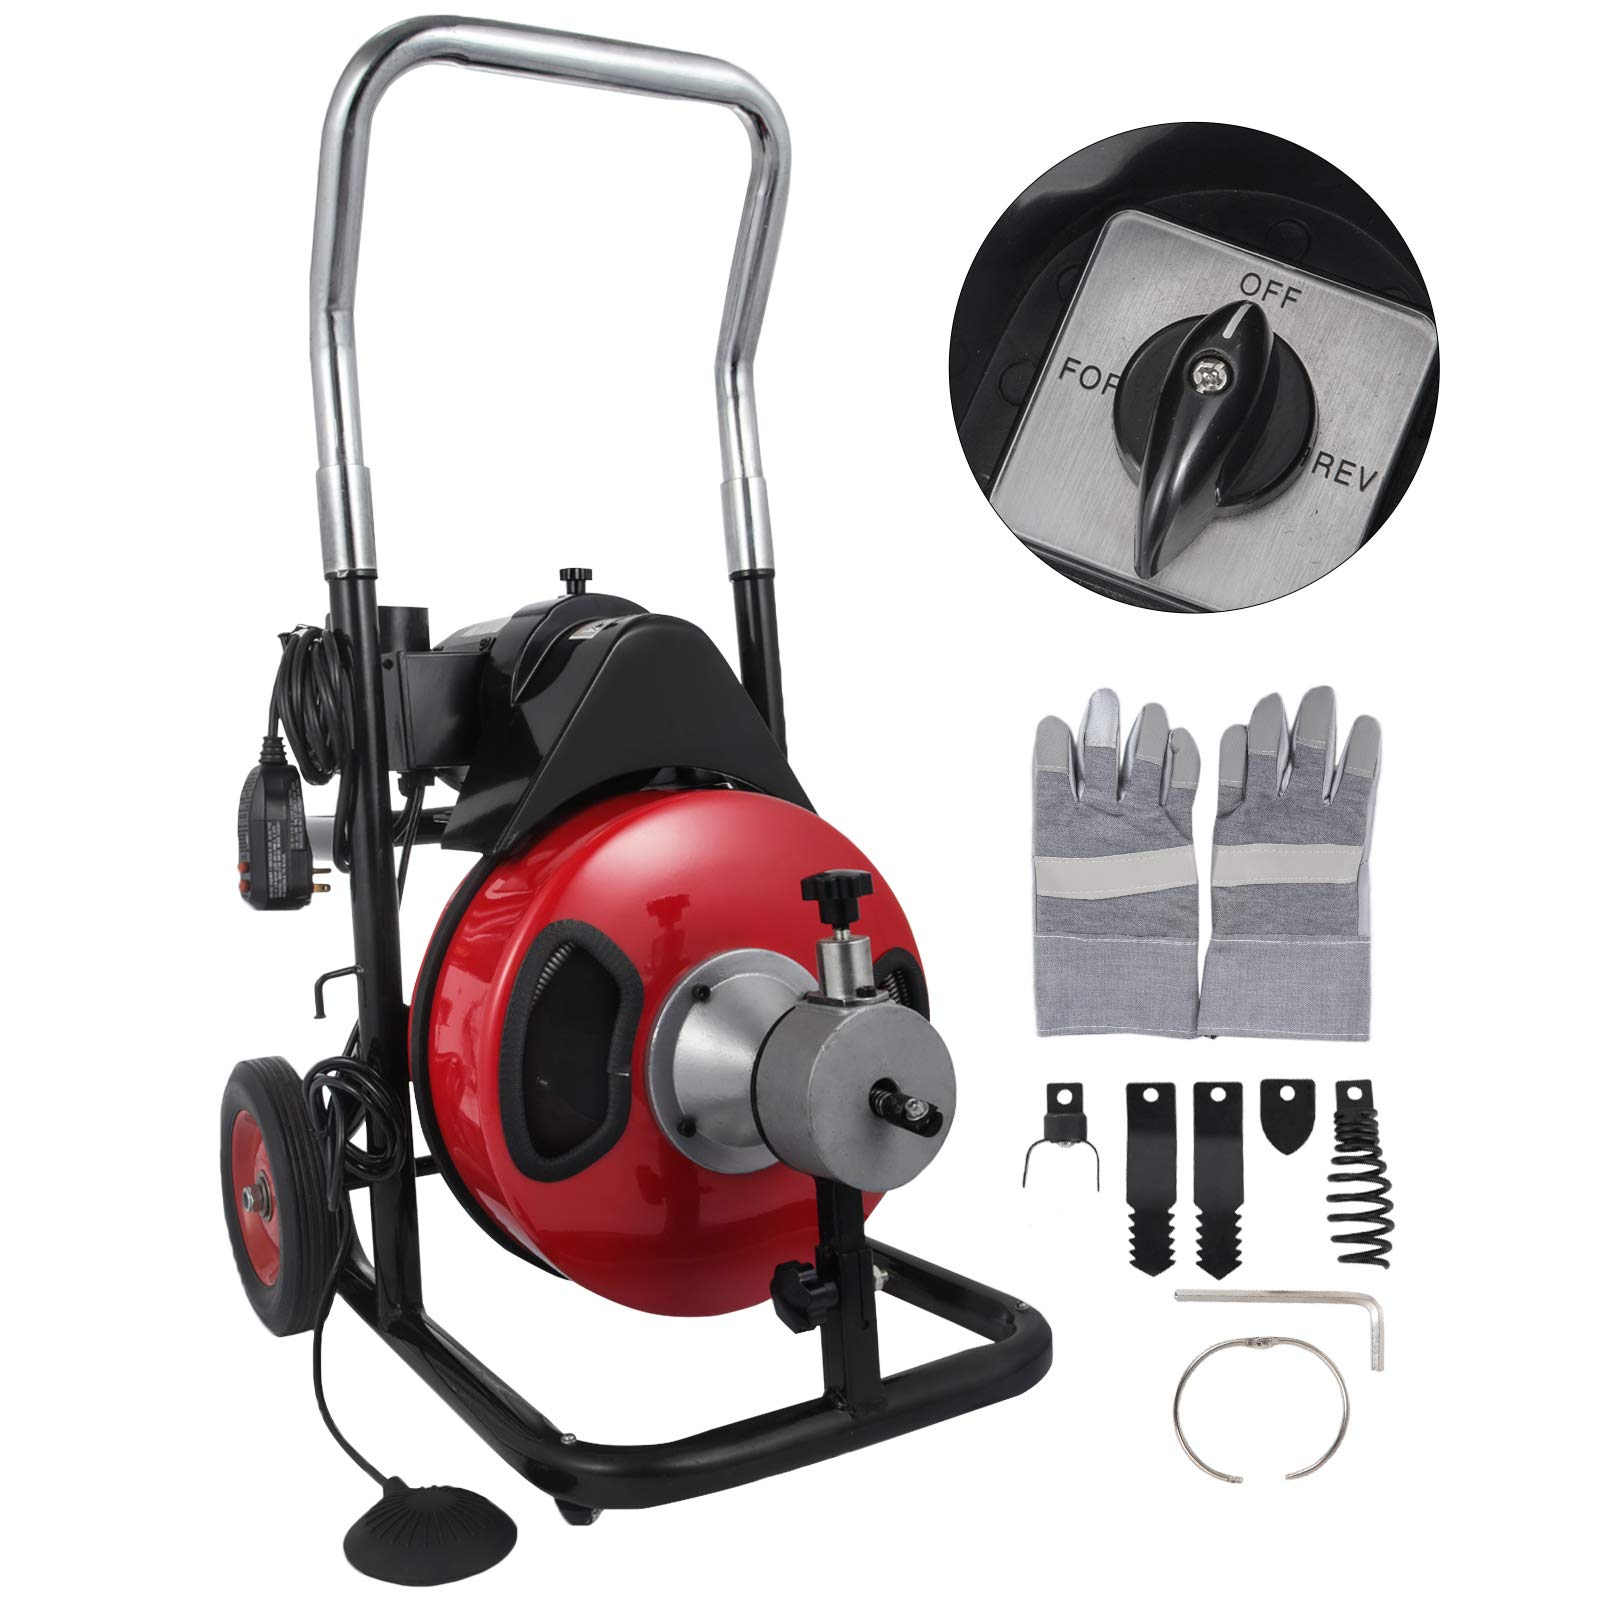 VEVOR 50 Feet by 1/2 Inch Electric Drain Auger with 4 Cutter & Foot Switch Drain Cleaner Machine Sewer Snake Drill Drain Auger Cleaner for 1'' to 4'' Pipes (50 Ft x 1/2 Inch with Wheel) by VEVOR